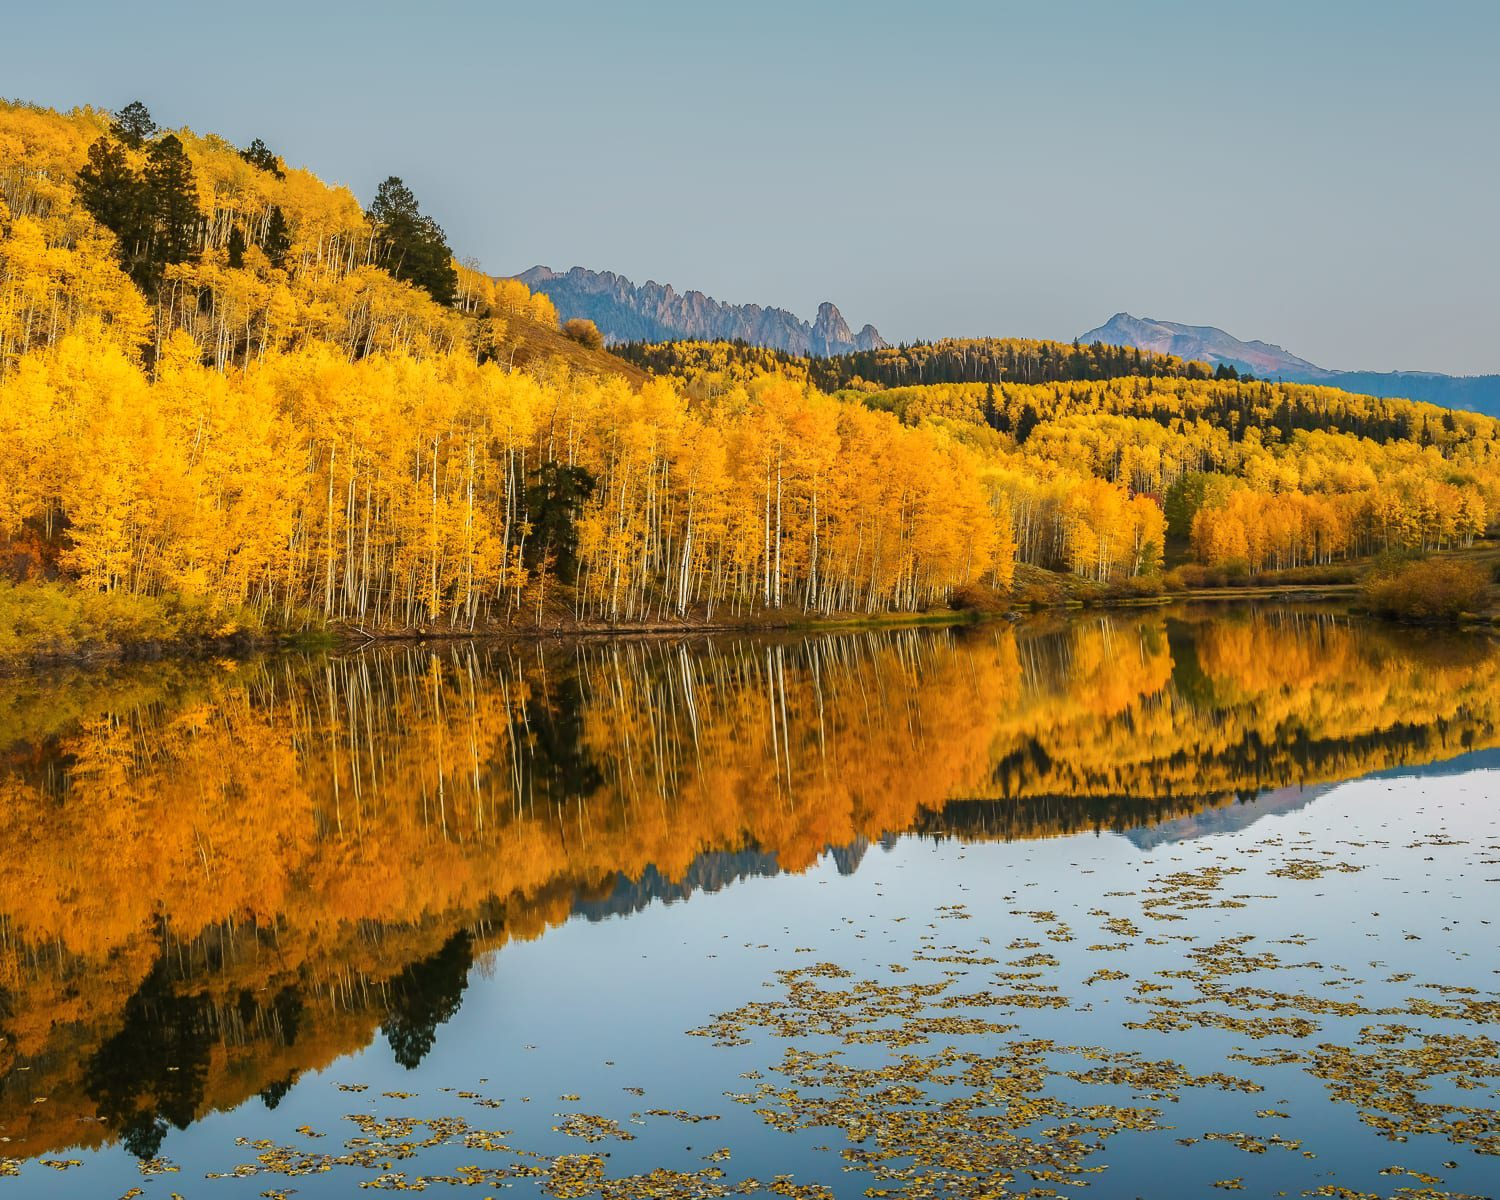 Reflection of yellow aspens in Cushman Lake.